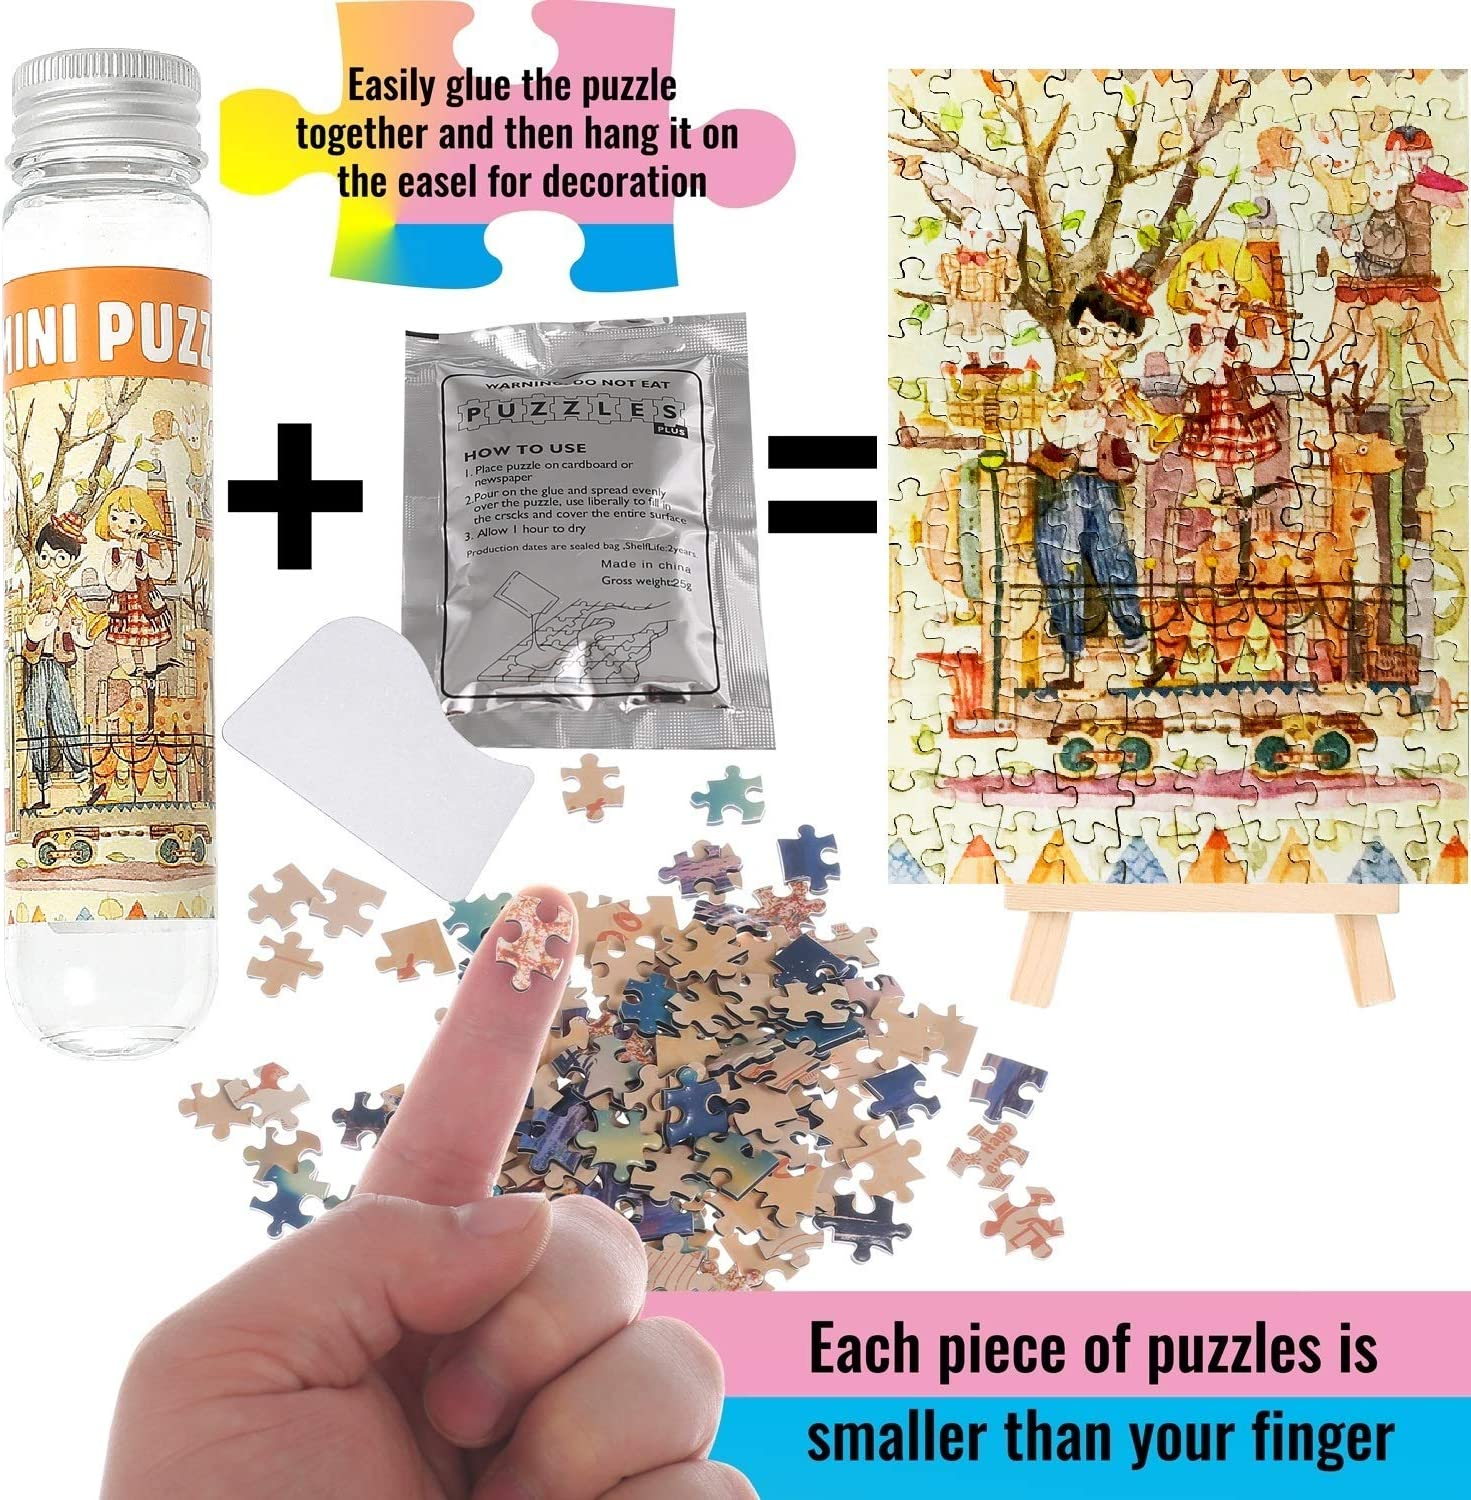 Mini Jigsaw Puzzles for Adults 150 Pieces Small Jigsaw Puzzles Aegean sea Concert Entertainment Gift Home Decor,6 x 4 Inches,3 Pack,Glue/&Mini Easel Included